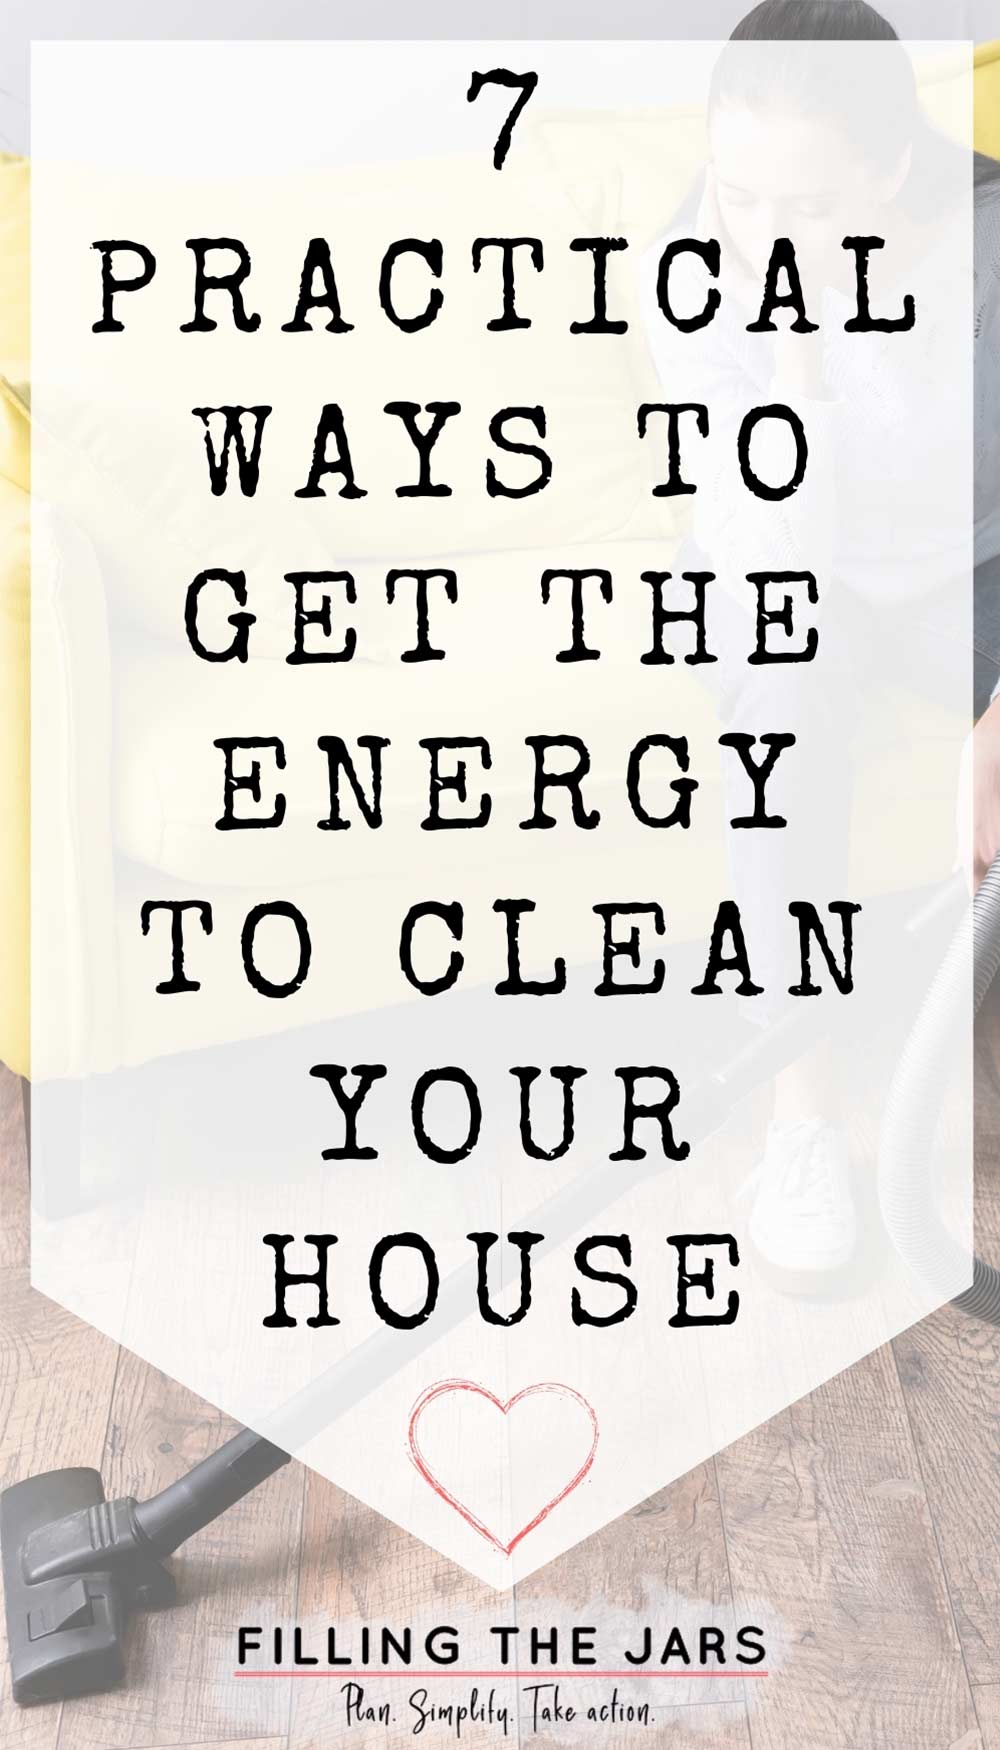 Text practical ways to get the energy to clean your house on white background over image of woman sitting on yellow couch holding part of vacuum.